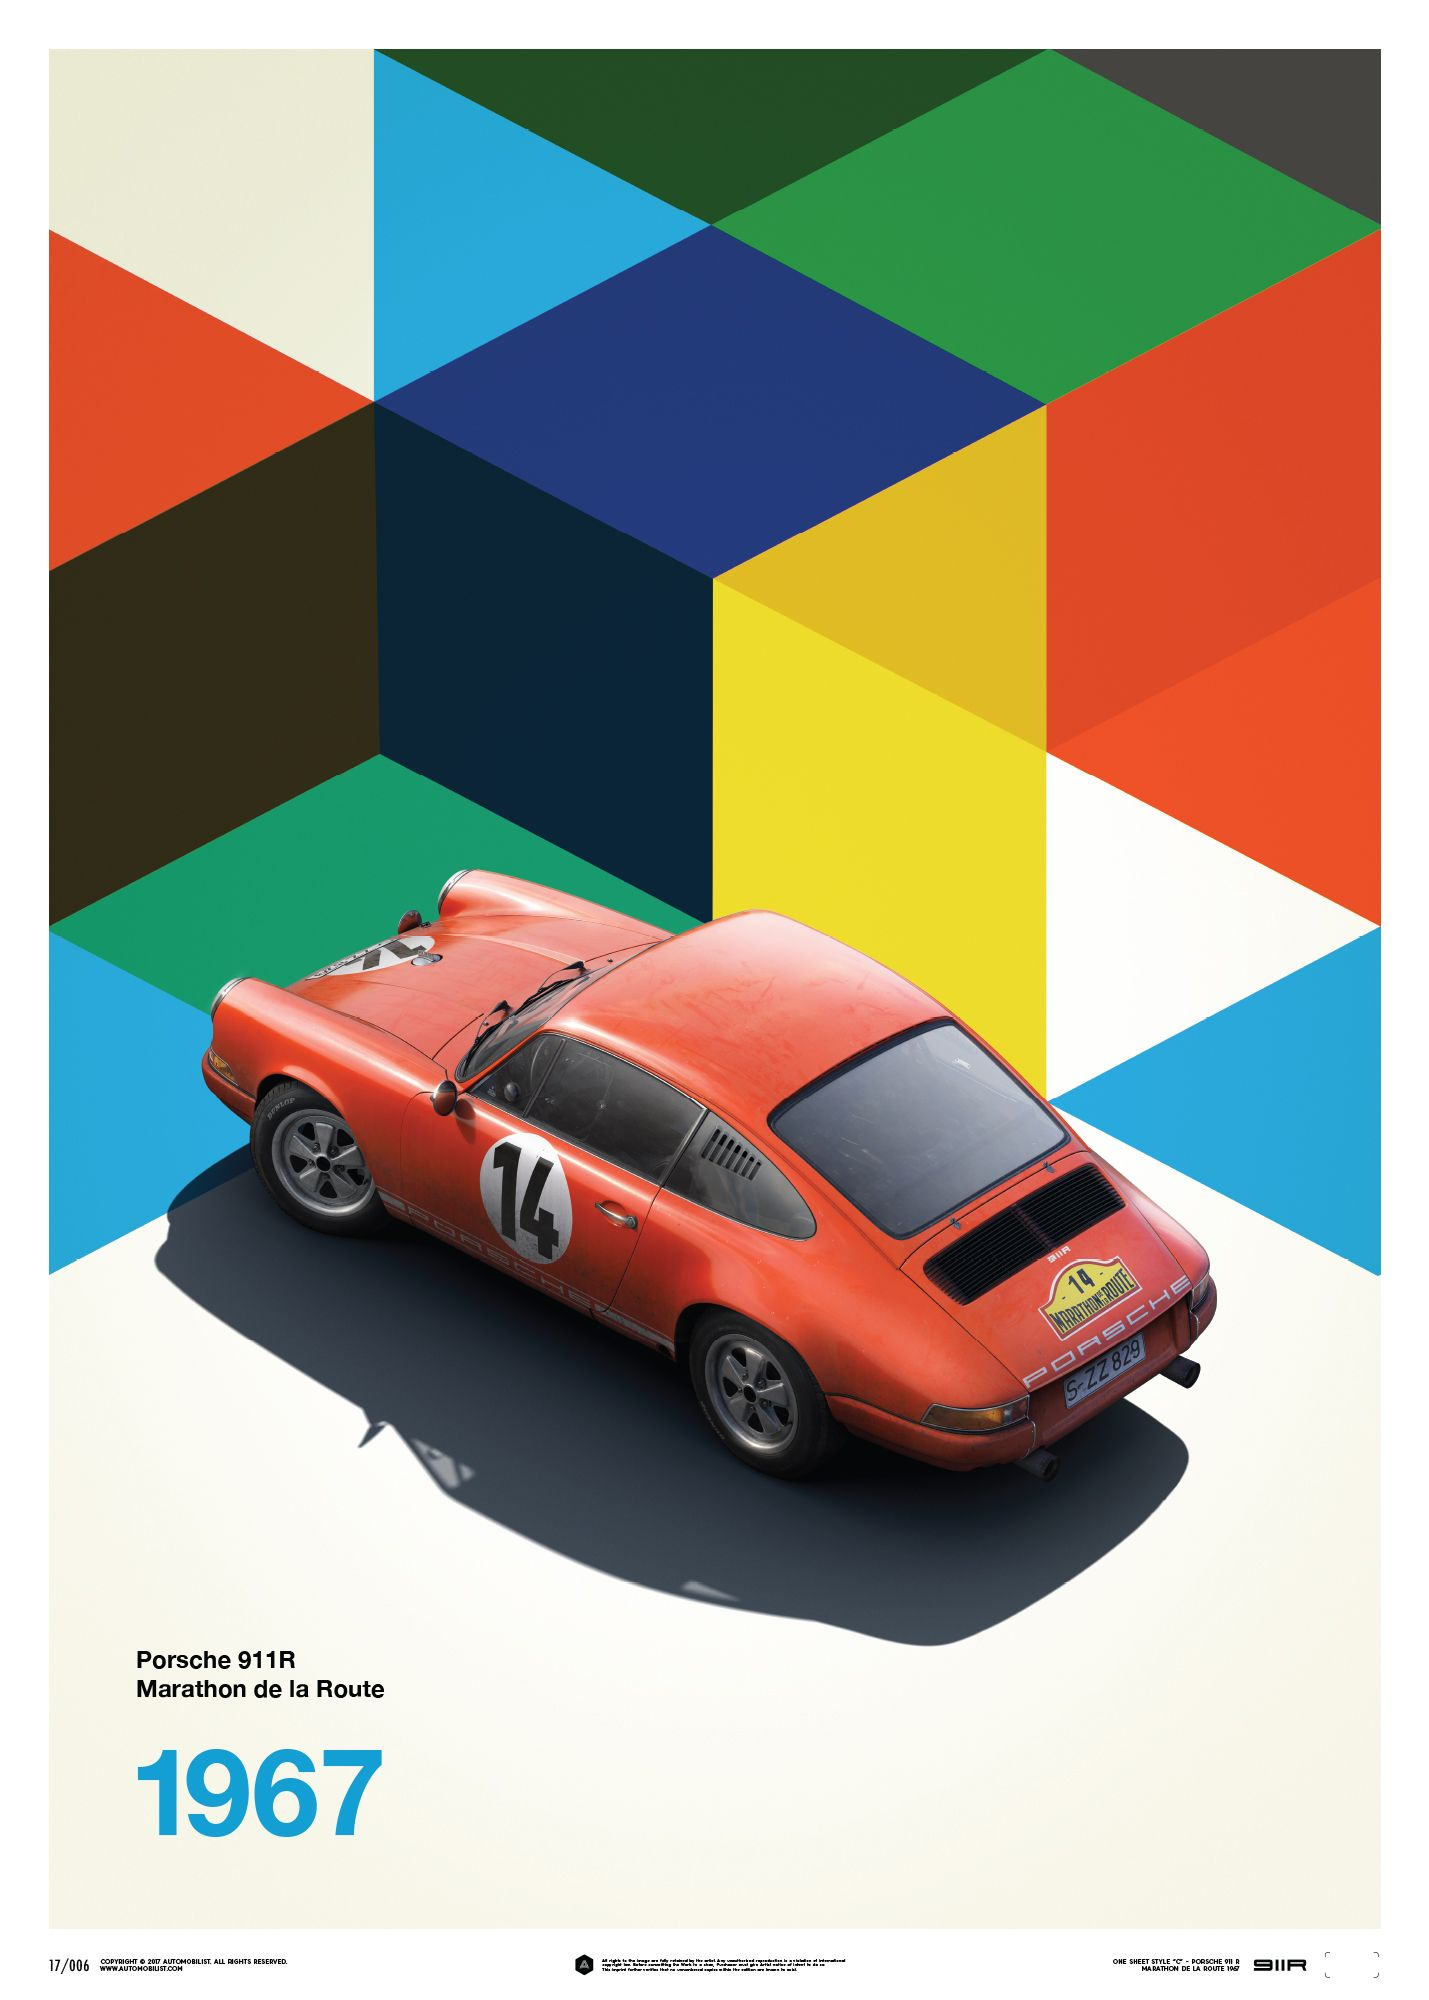 New Automobilist Prints By Unique Limited Have Been Added To The Shop Retro Graphic Design Vintage Poster Art Porsche